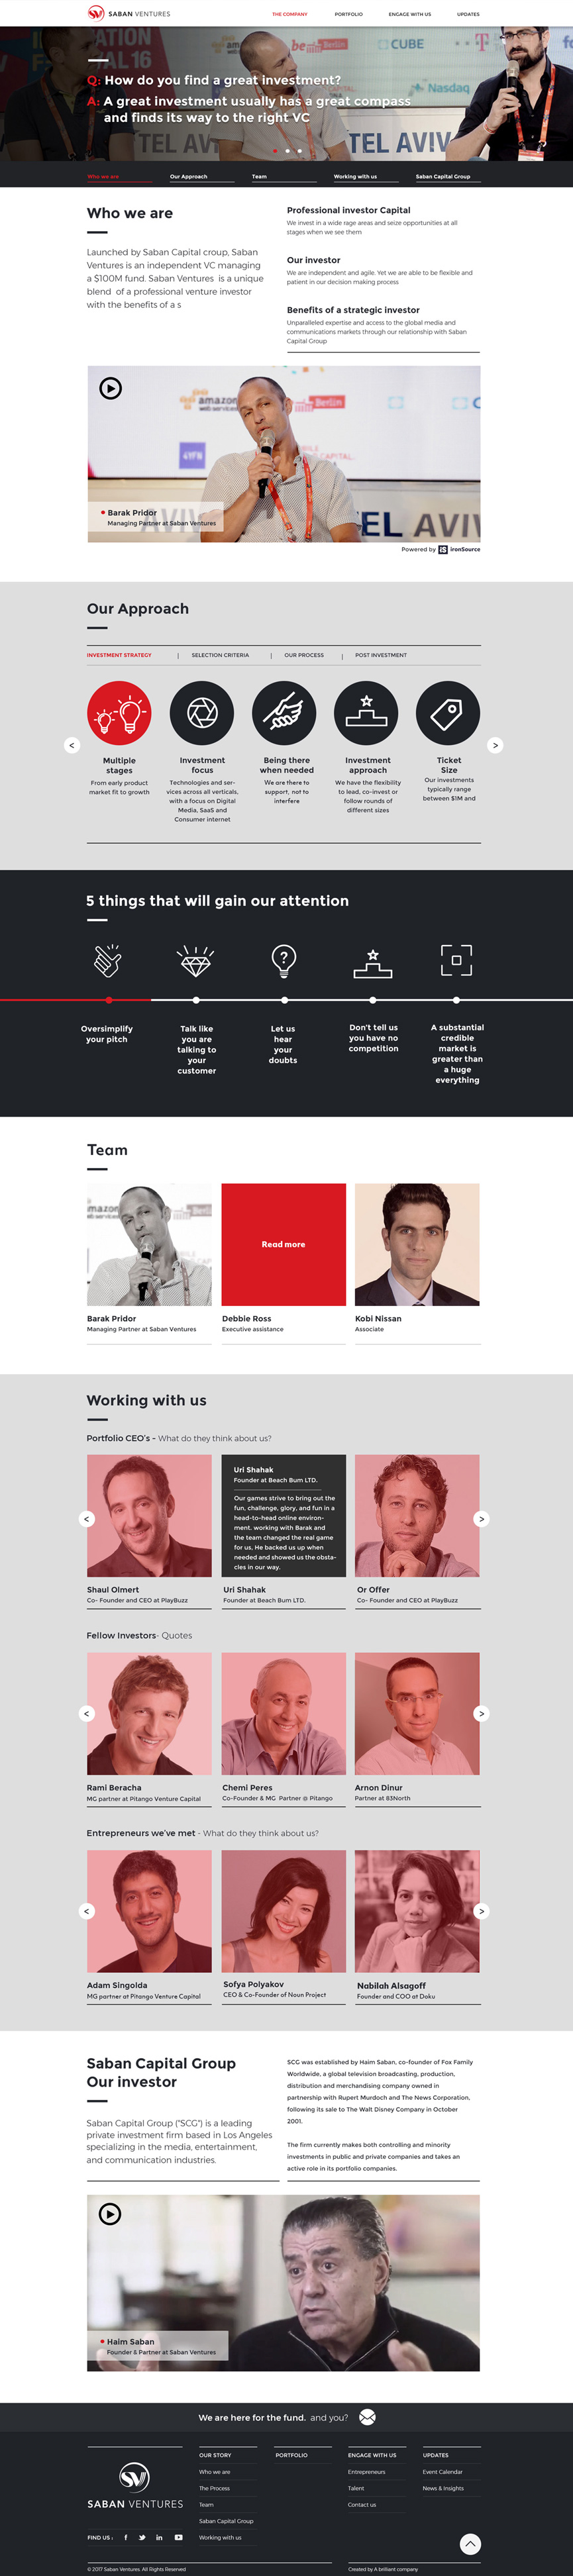 About Saban Ventures - one pager - Do scroll down